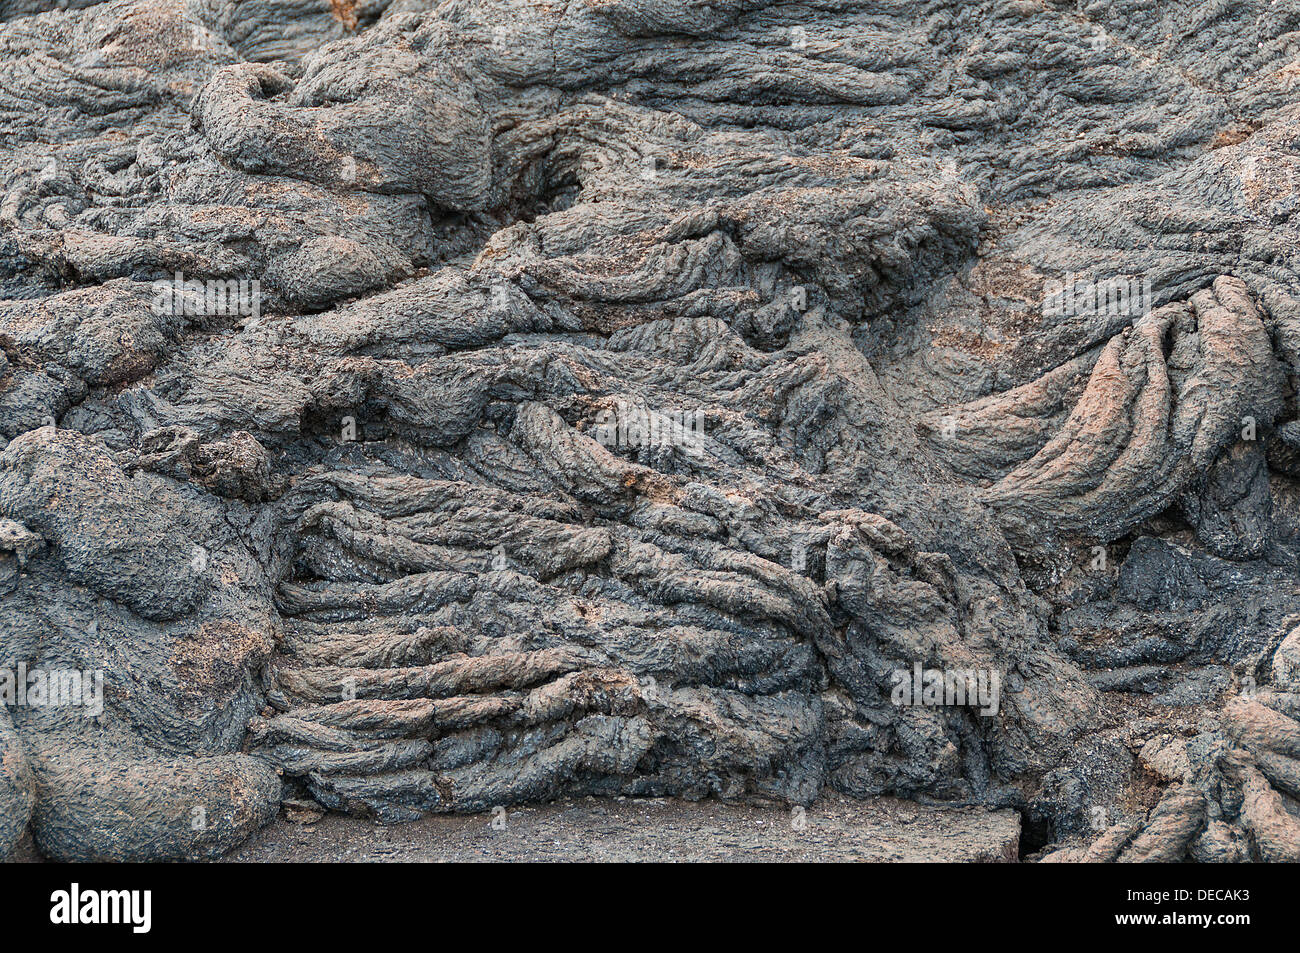 Close up of Pahoehoe Lava - Stock Image